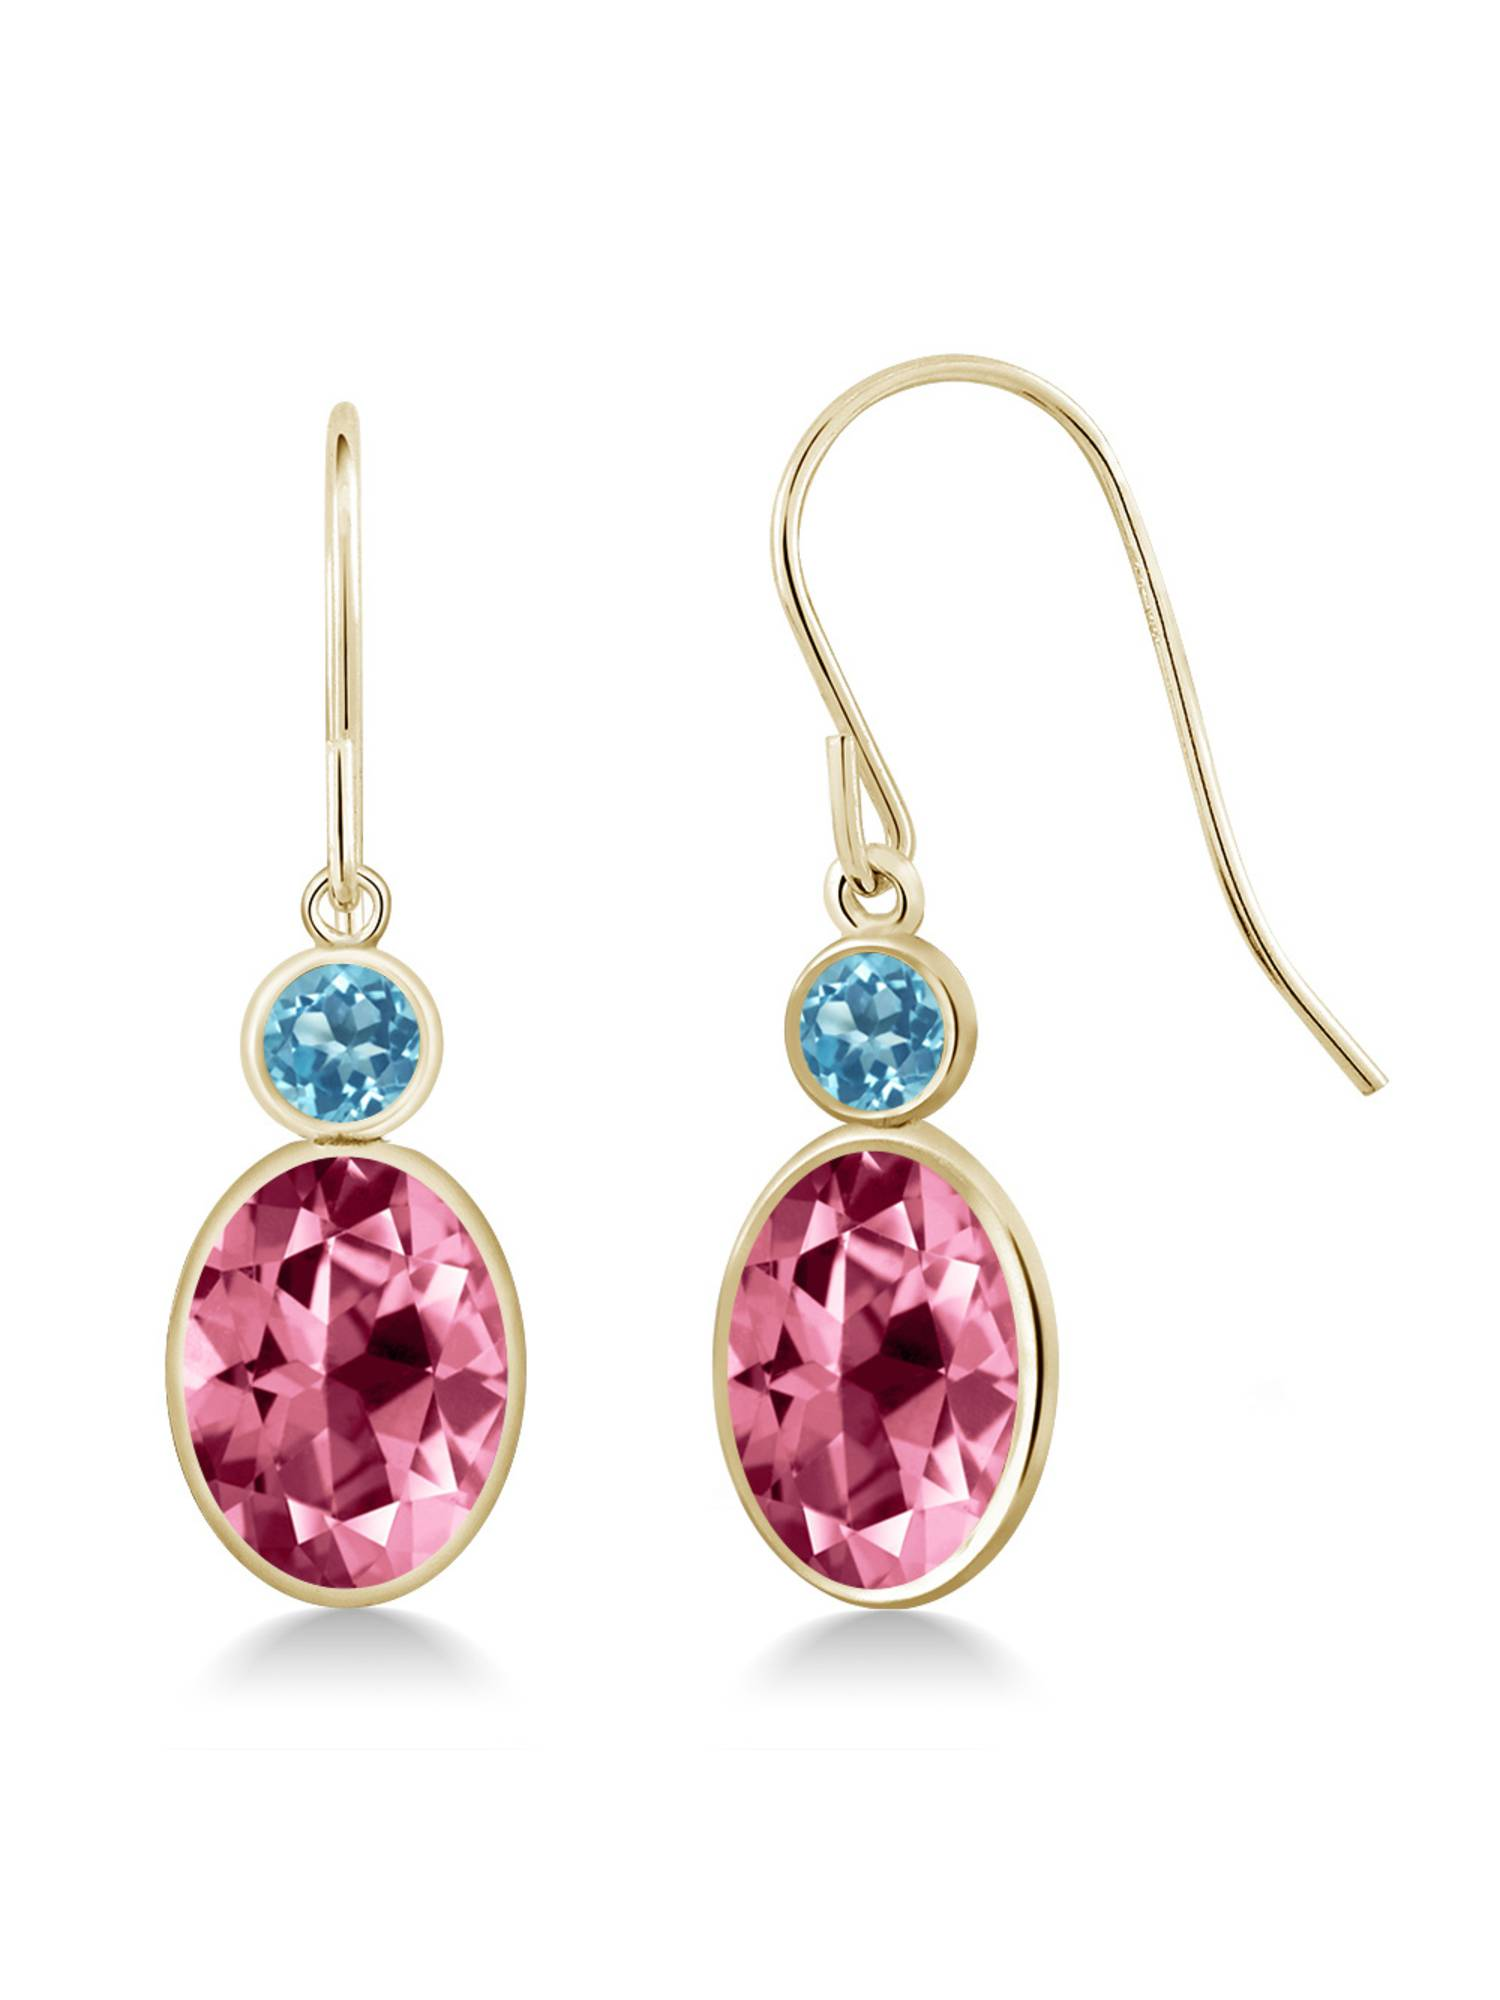 14K Yellow Gold Earrings Topaz Set with Oval Pink Topaz from Swarovski by